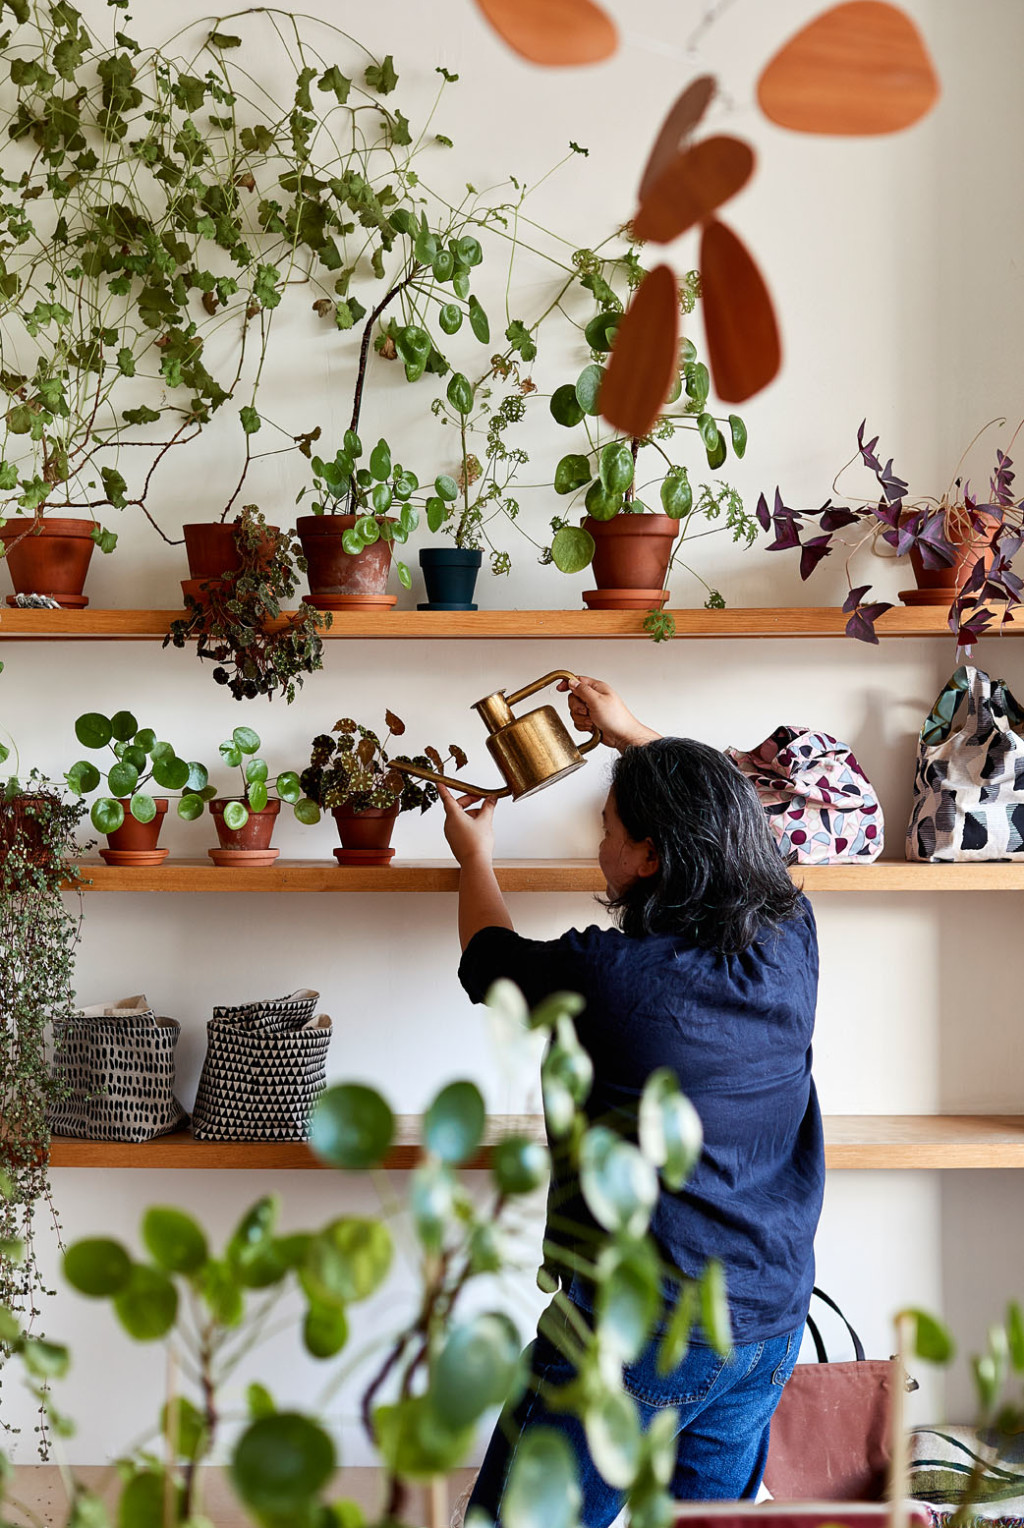 Arounna Khounnoraj watering indoor plants in a light-filled space